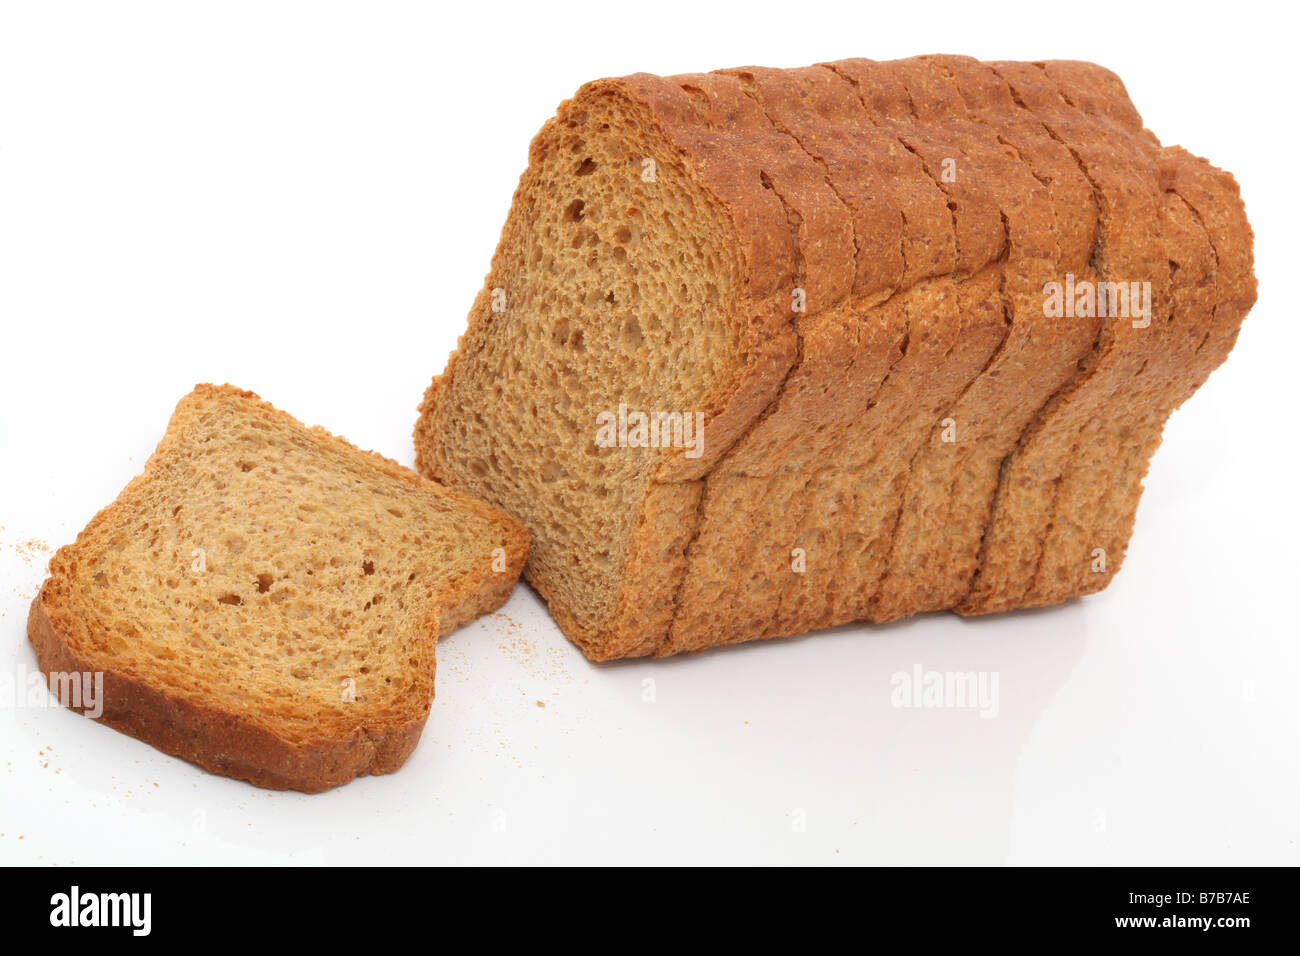 dry toasted bread loaf in slices isolated on white background Stock Photo